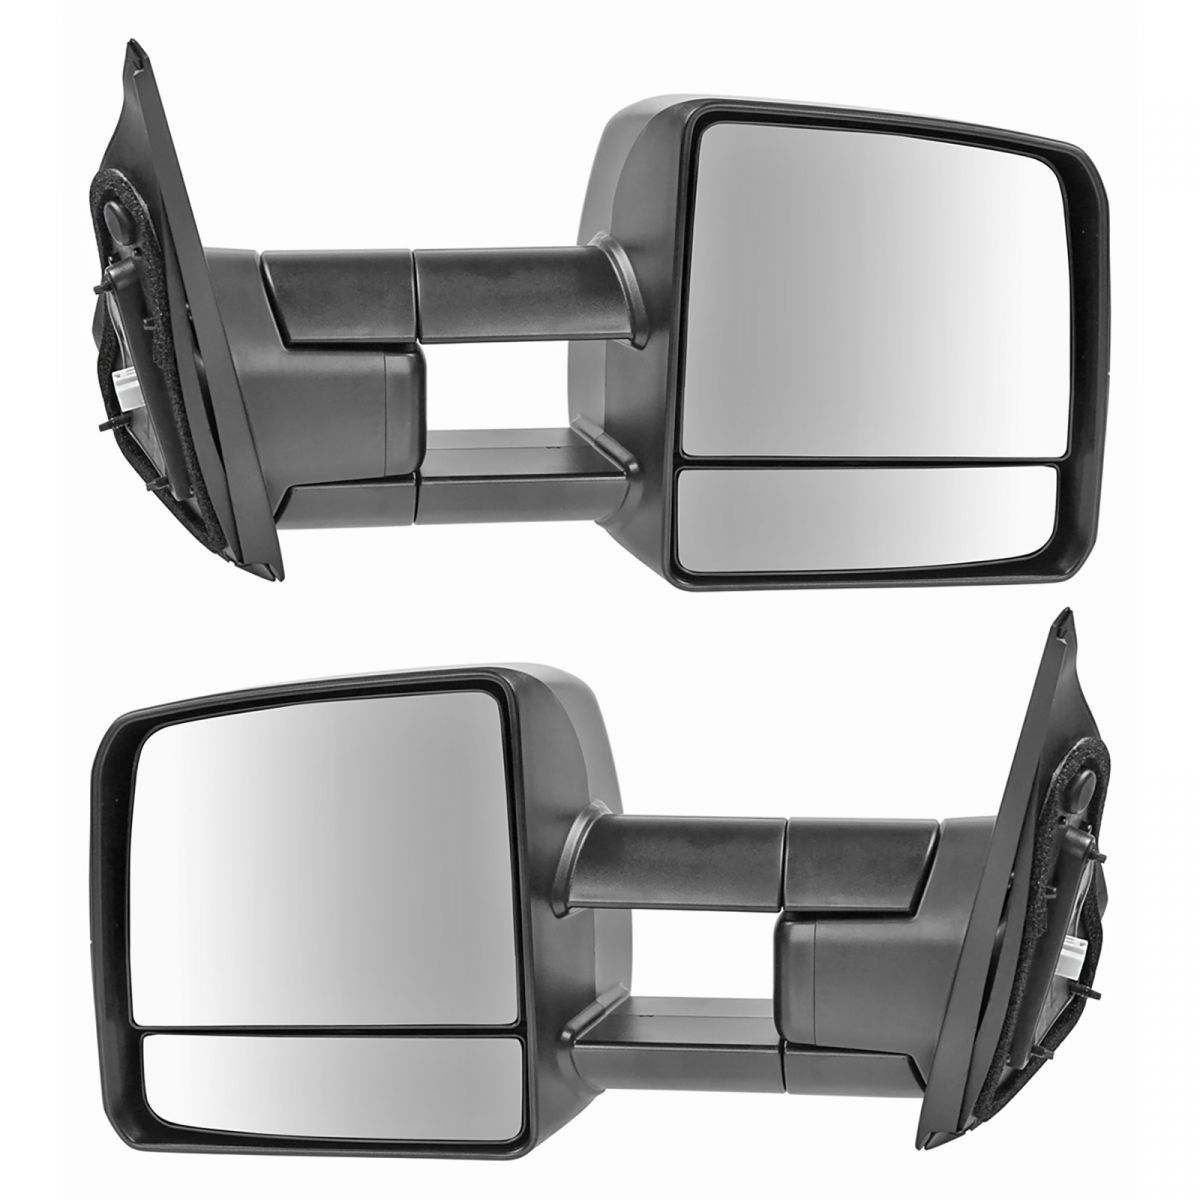 RH Passenger Tow Power Heated Signal Side Mirrors for 07-16 Toyota Tundra Truck